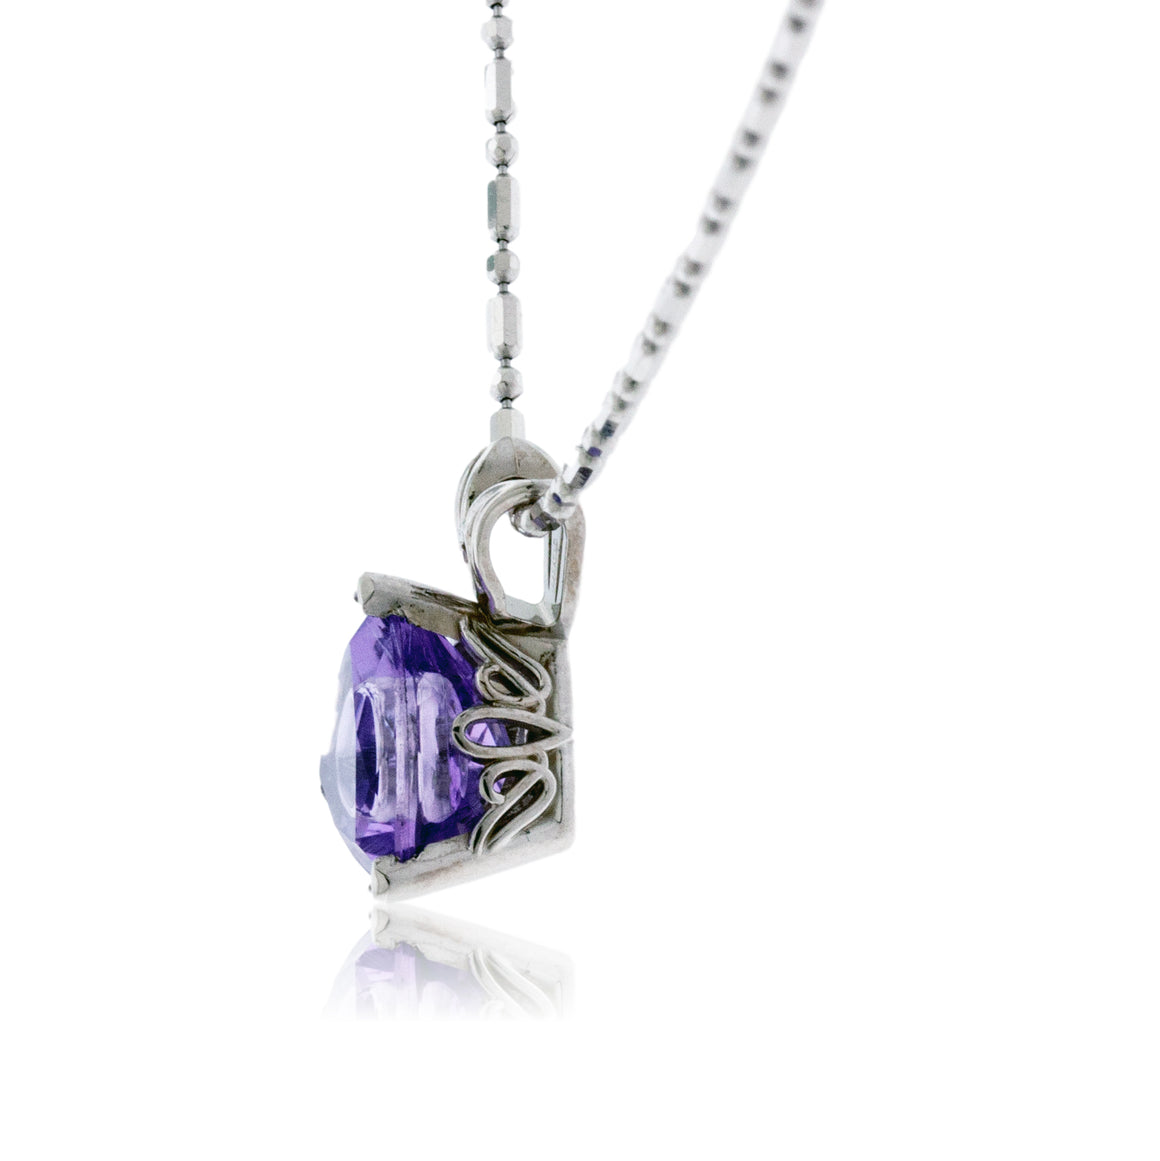 Amethyst Pendant with Diamonds Inset